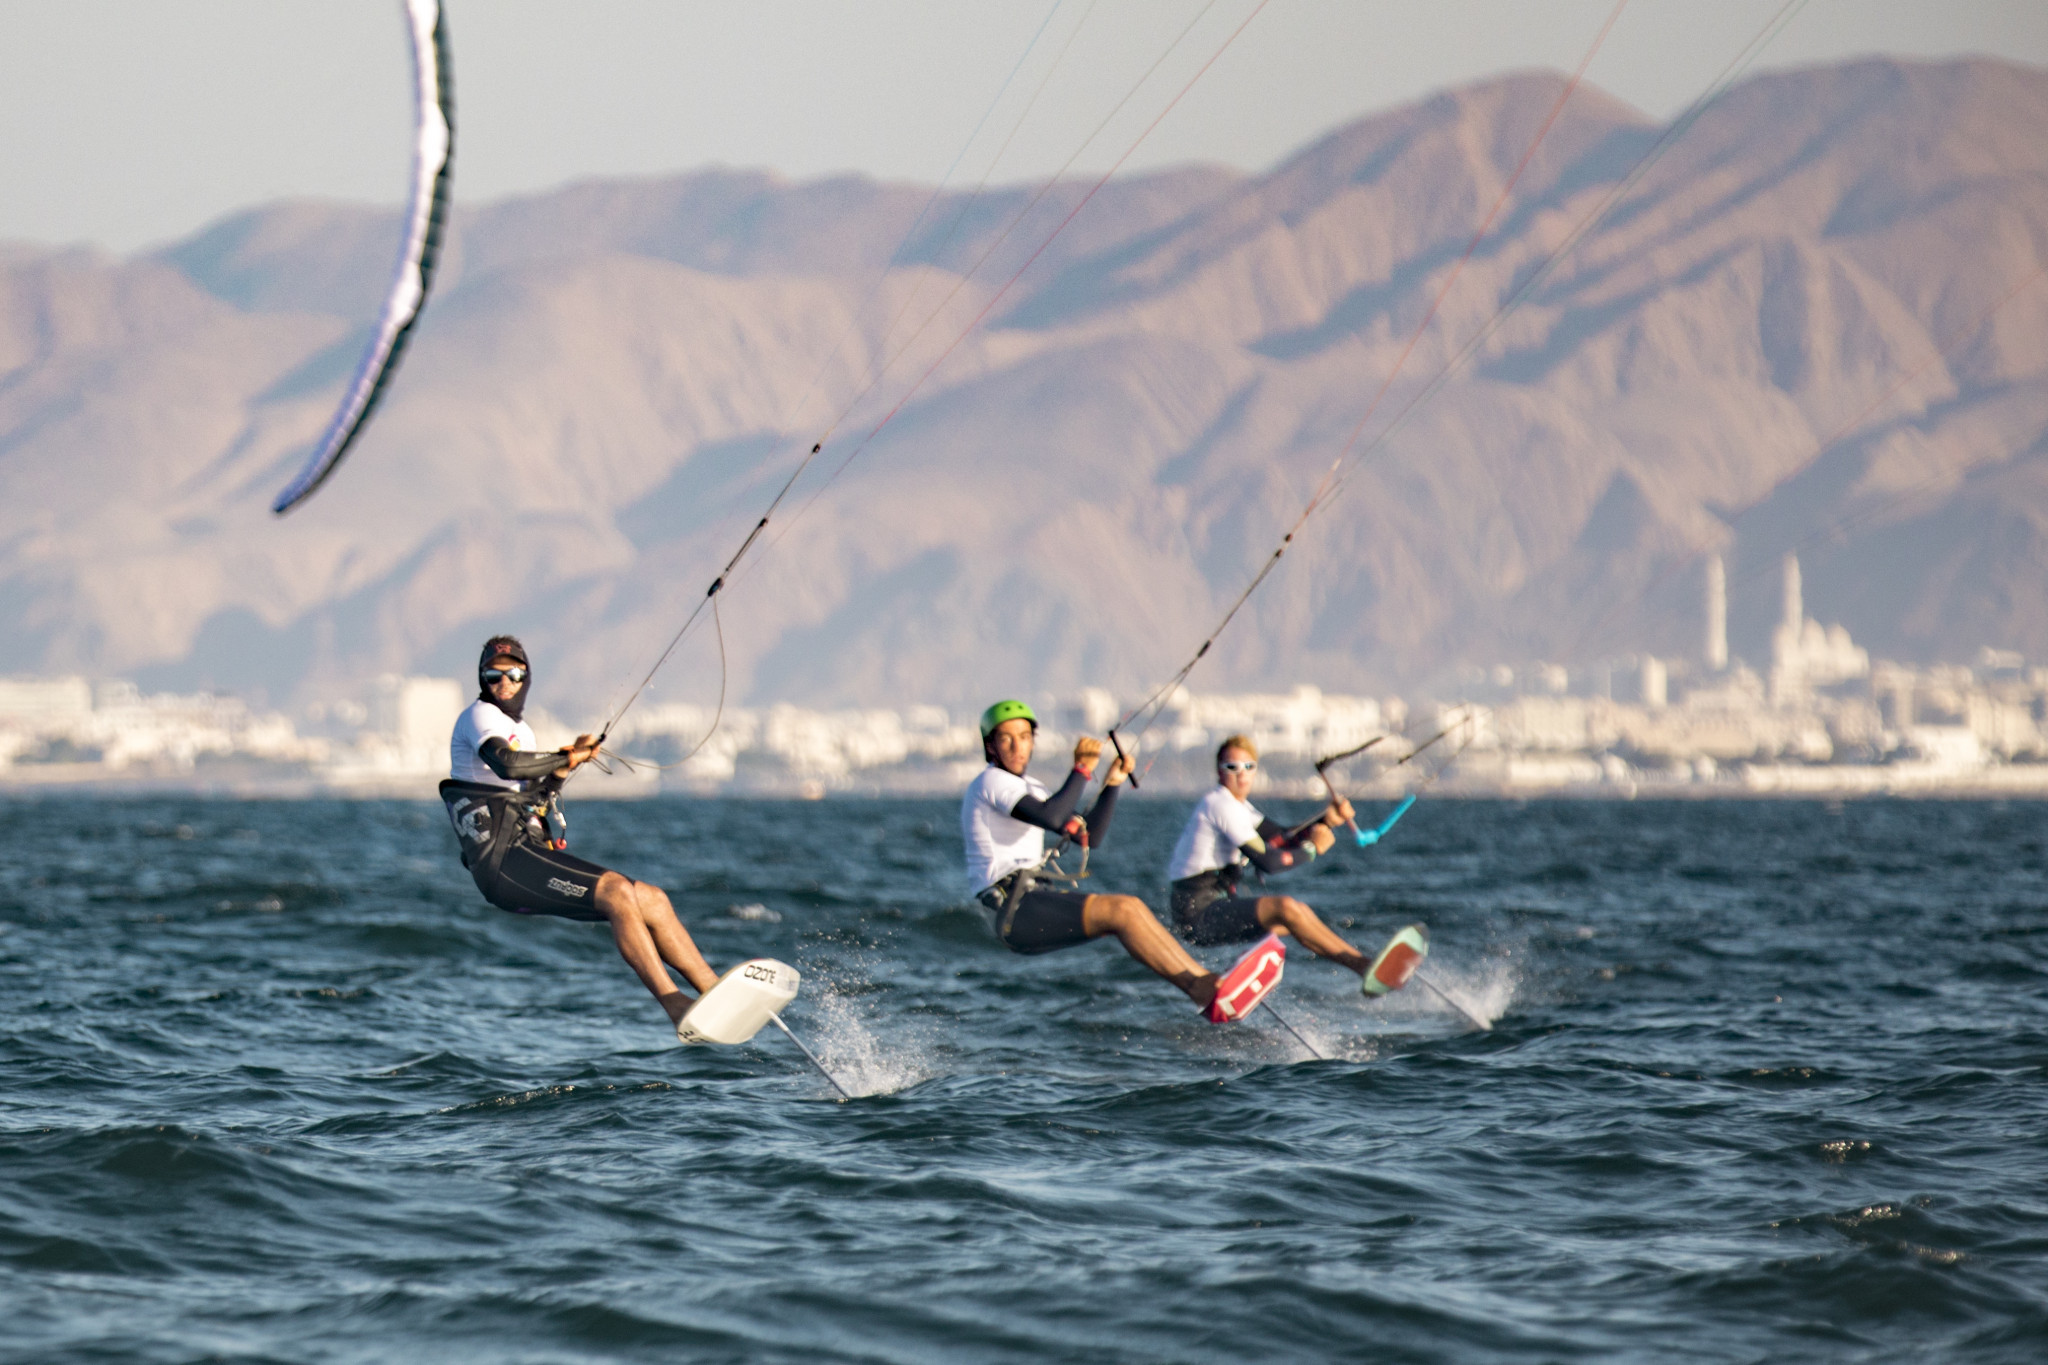 Parlier takes lead on day three of Formula Kite World Championships